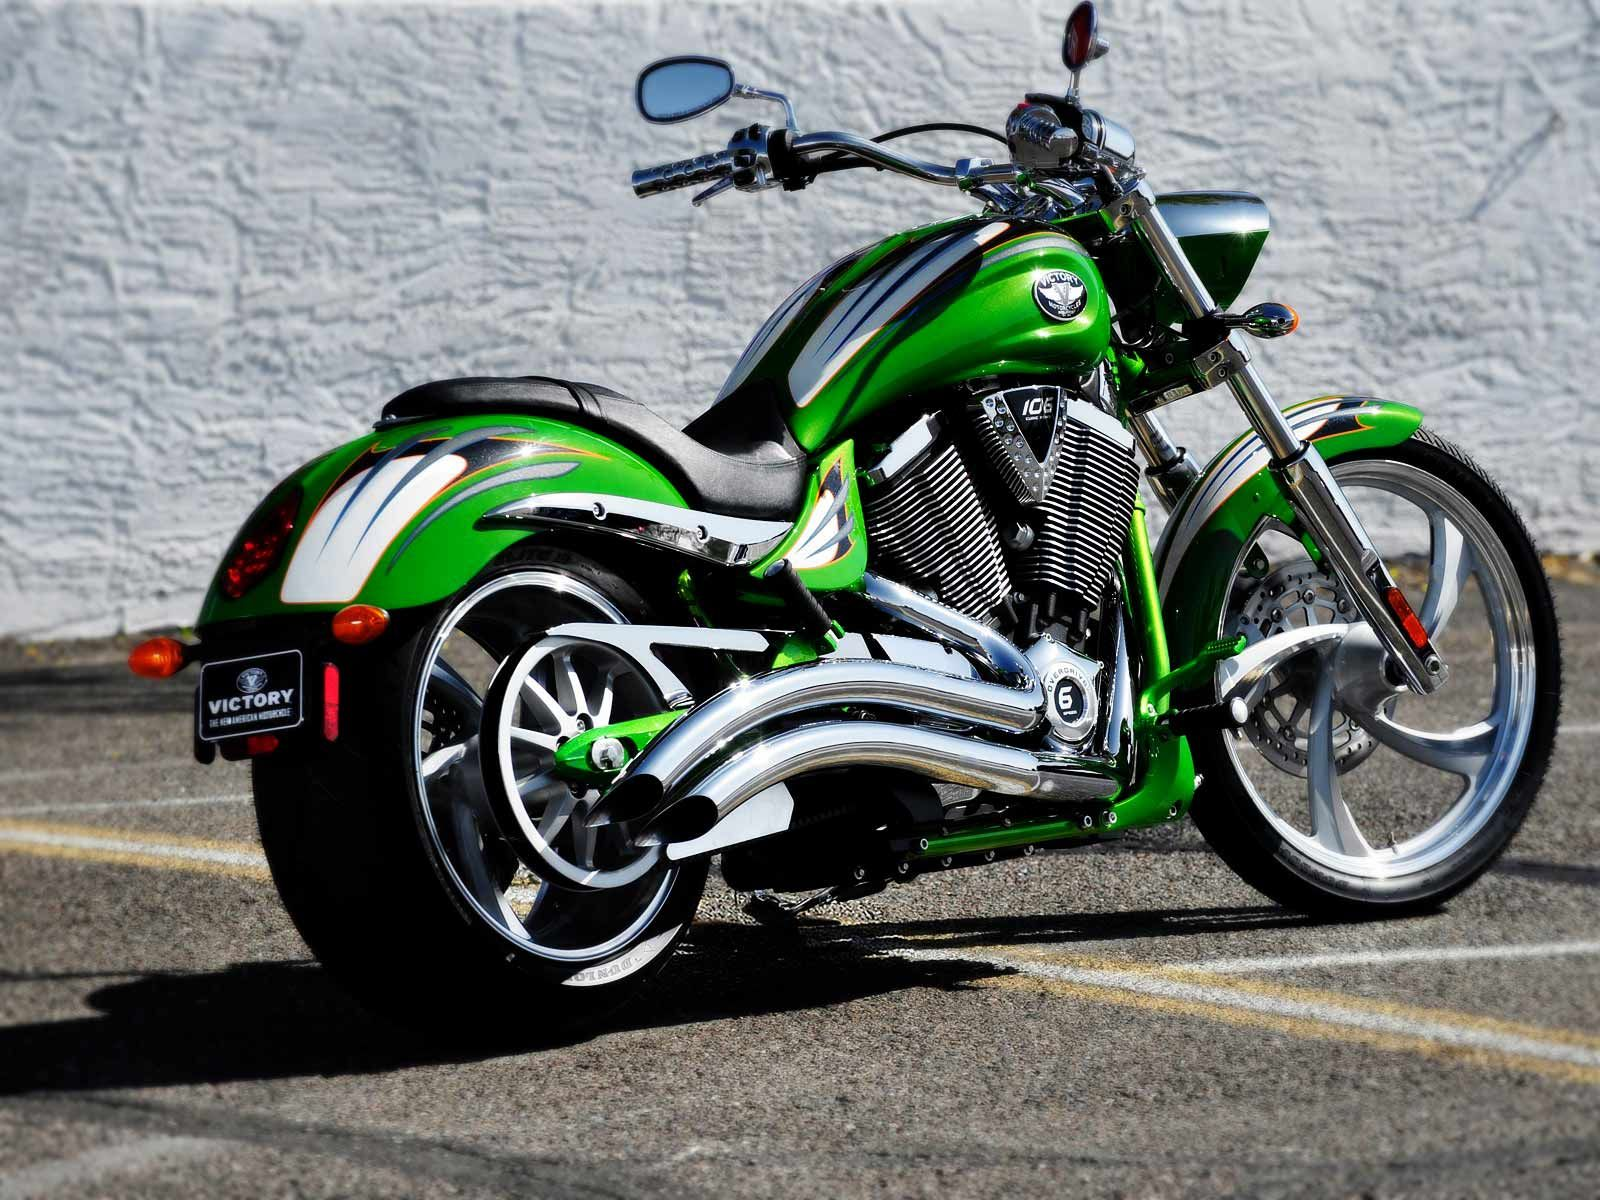 Victory Vegas Jackpot Green Costum Victory Motorcycles Victory